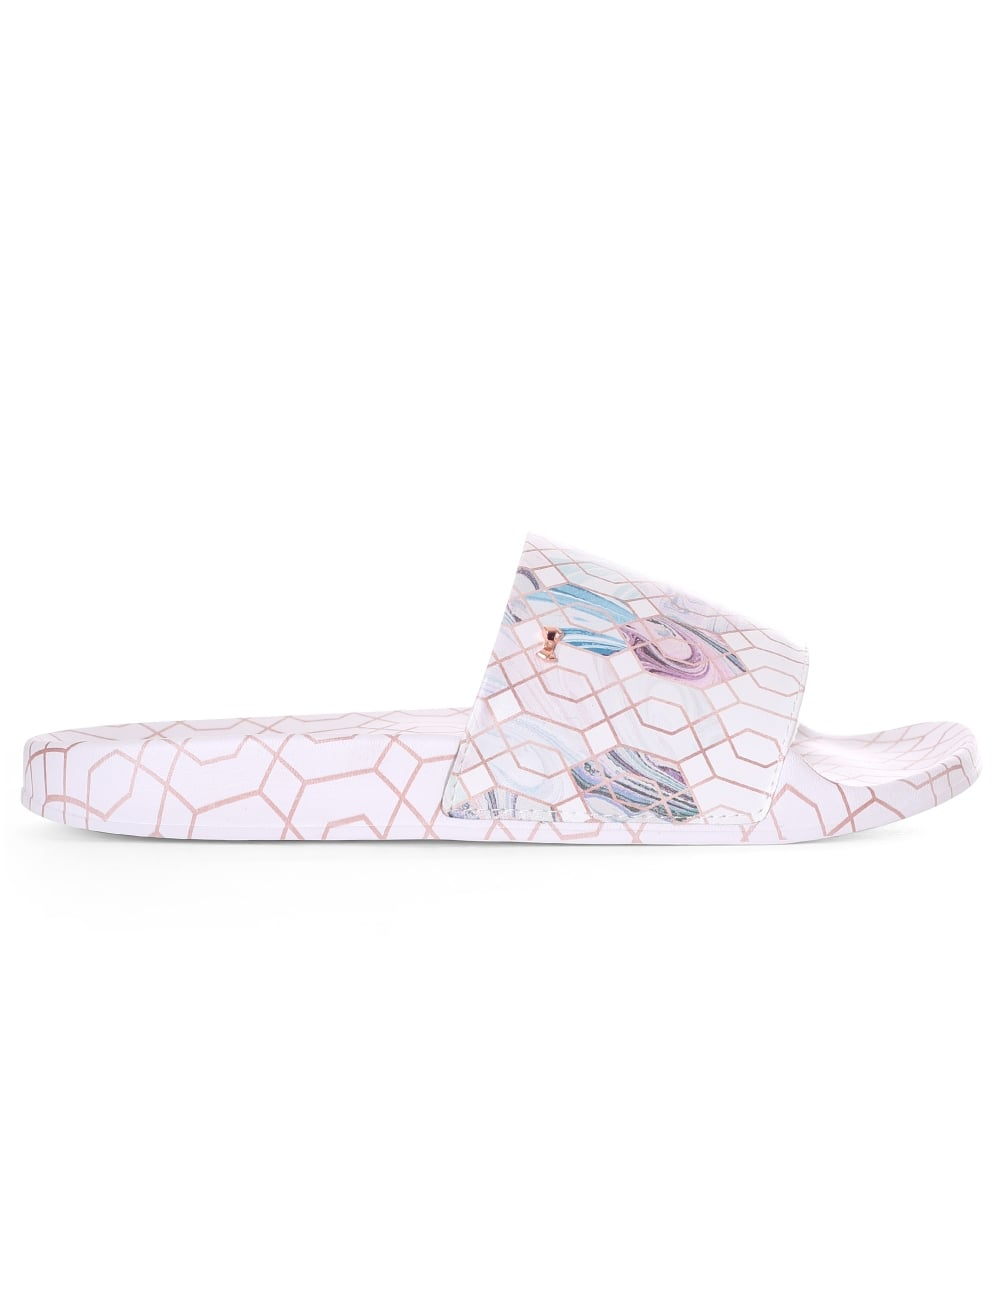 174d5bac0da8 Ted Baker Women s Printed Sliders